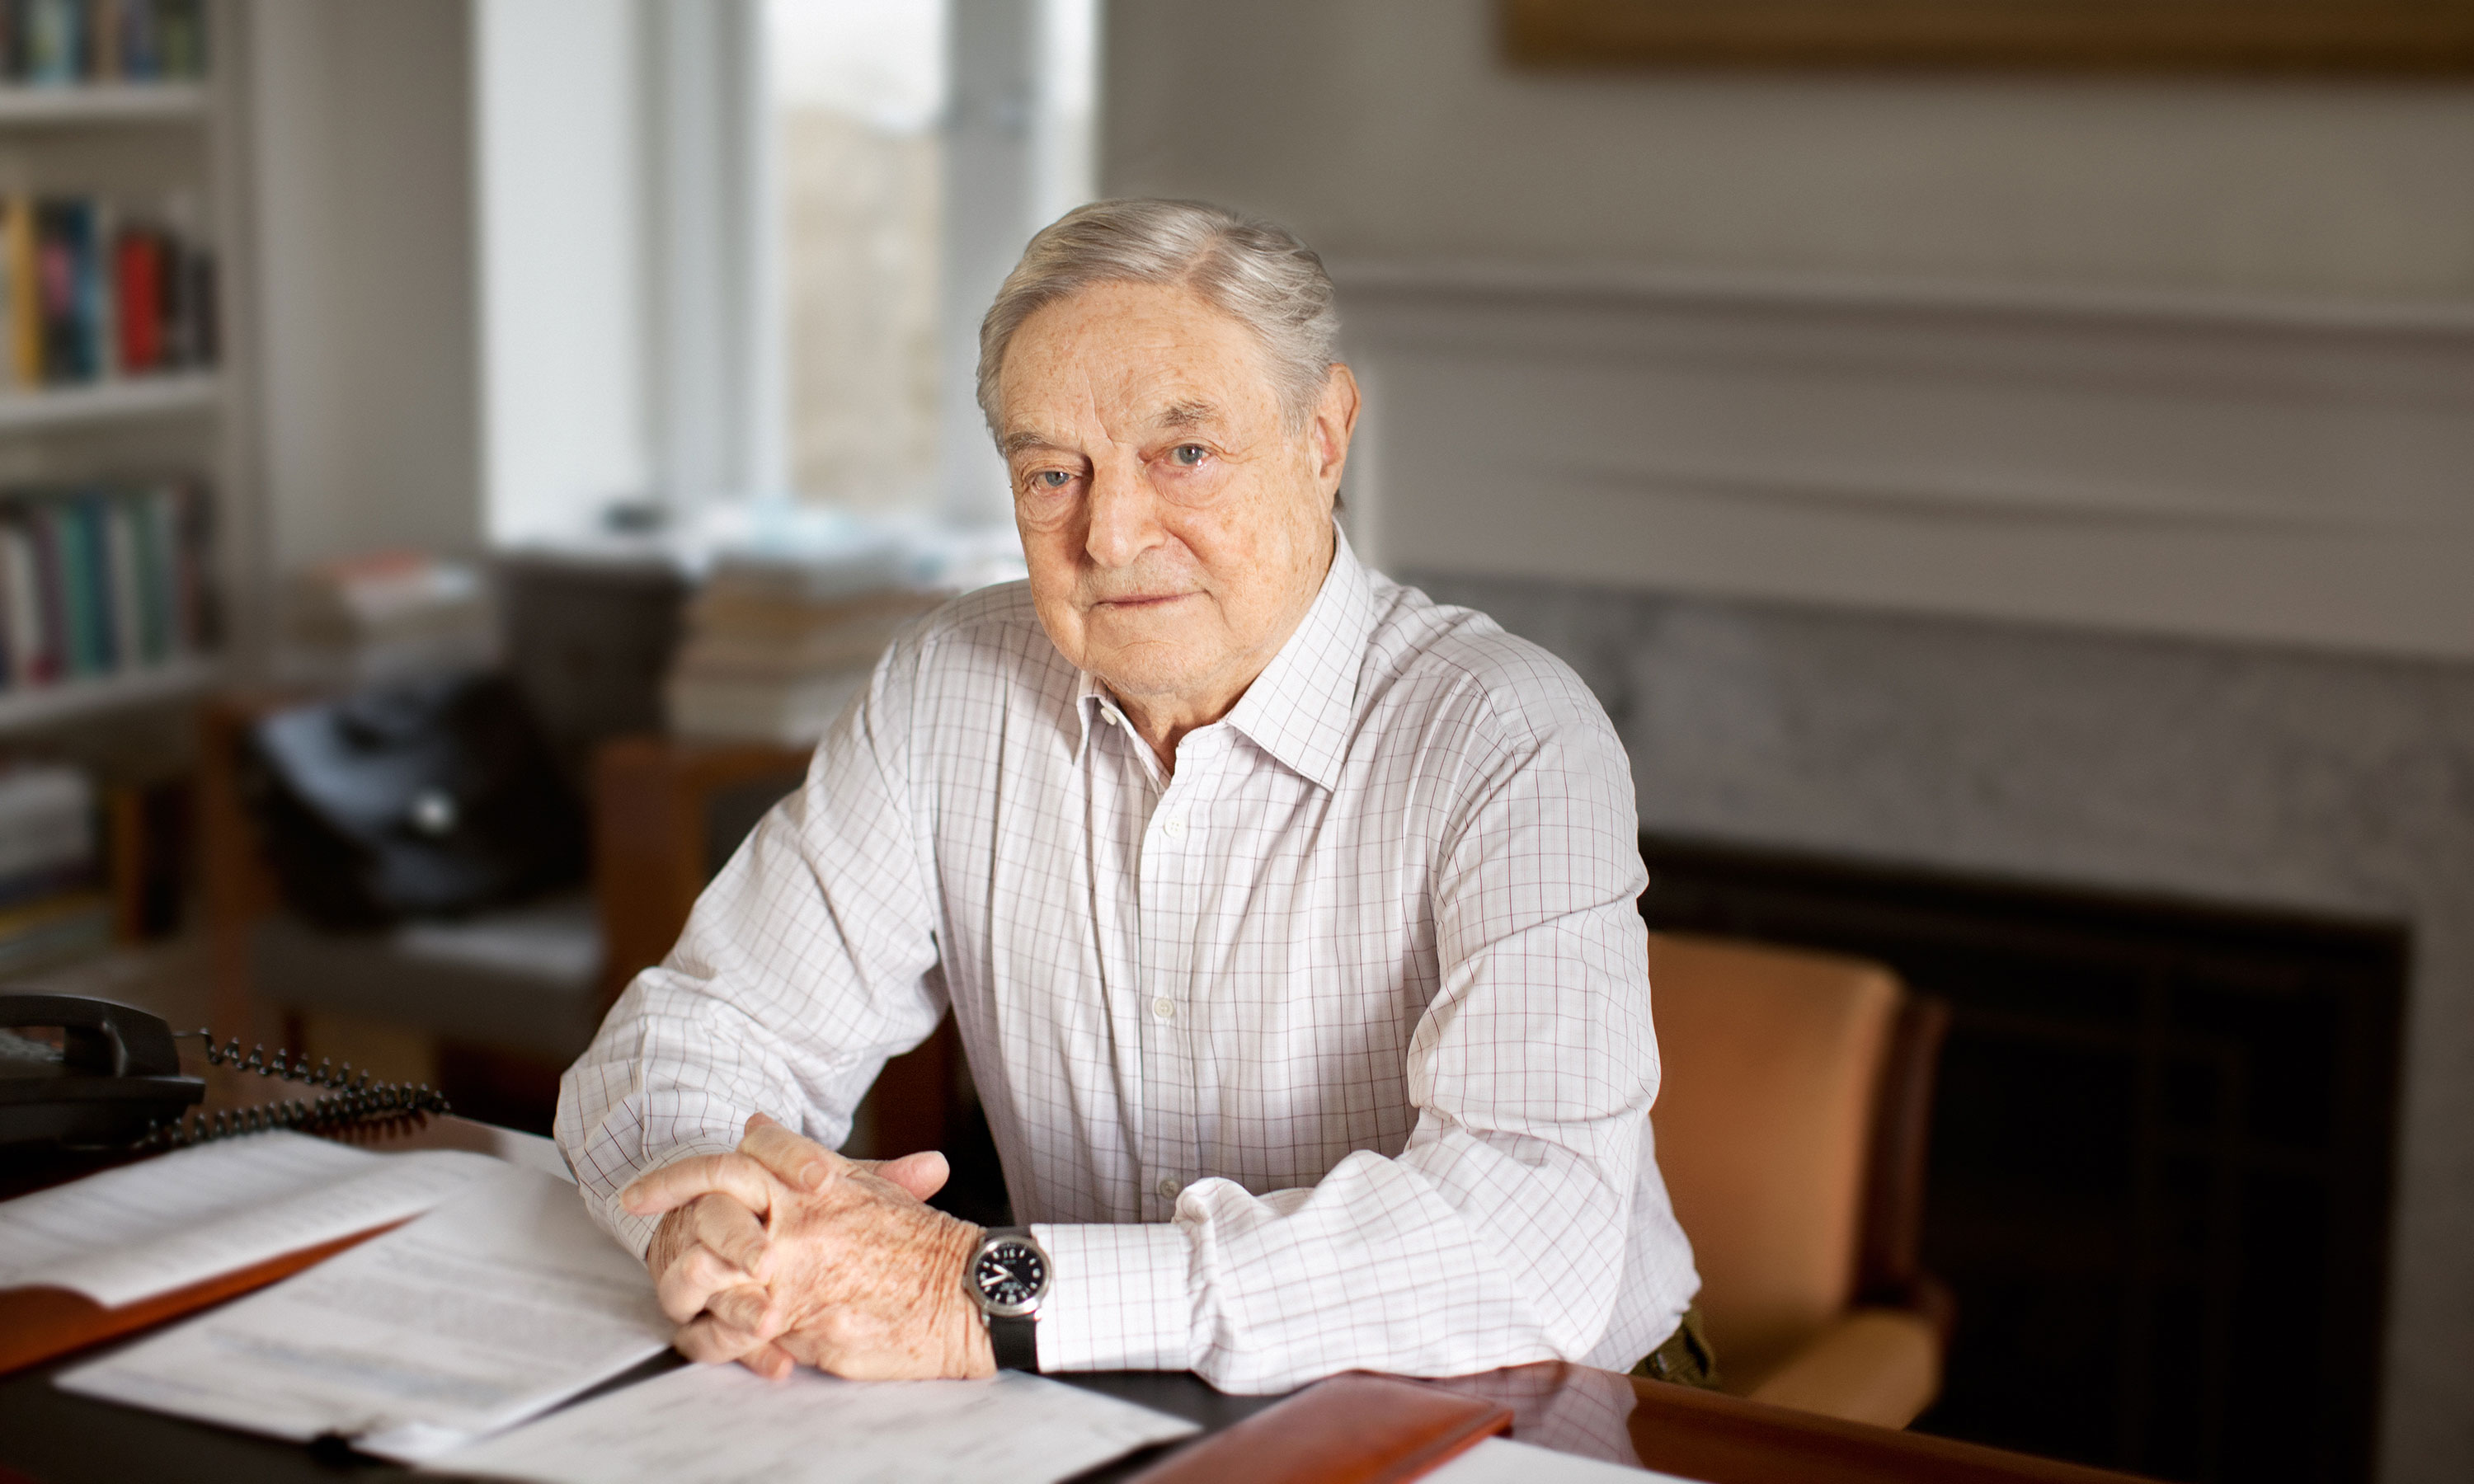 https://www.redaccion.com.ar/wp-content/uploads/2018/05/george_soros_at_desk.jpg